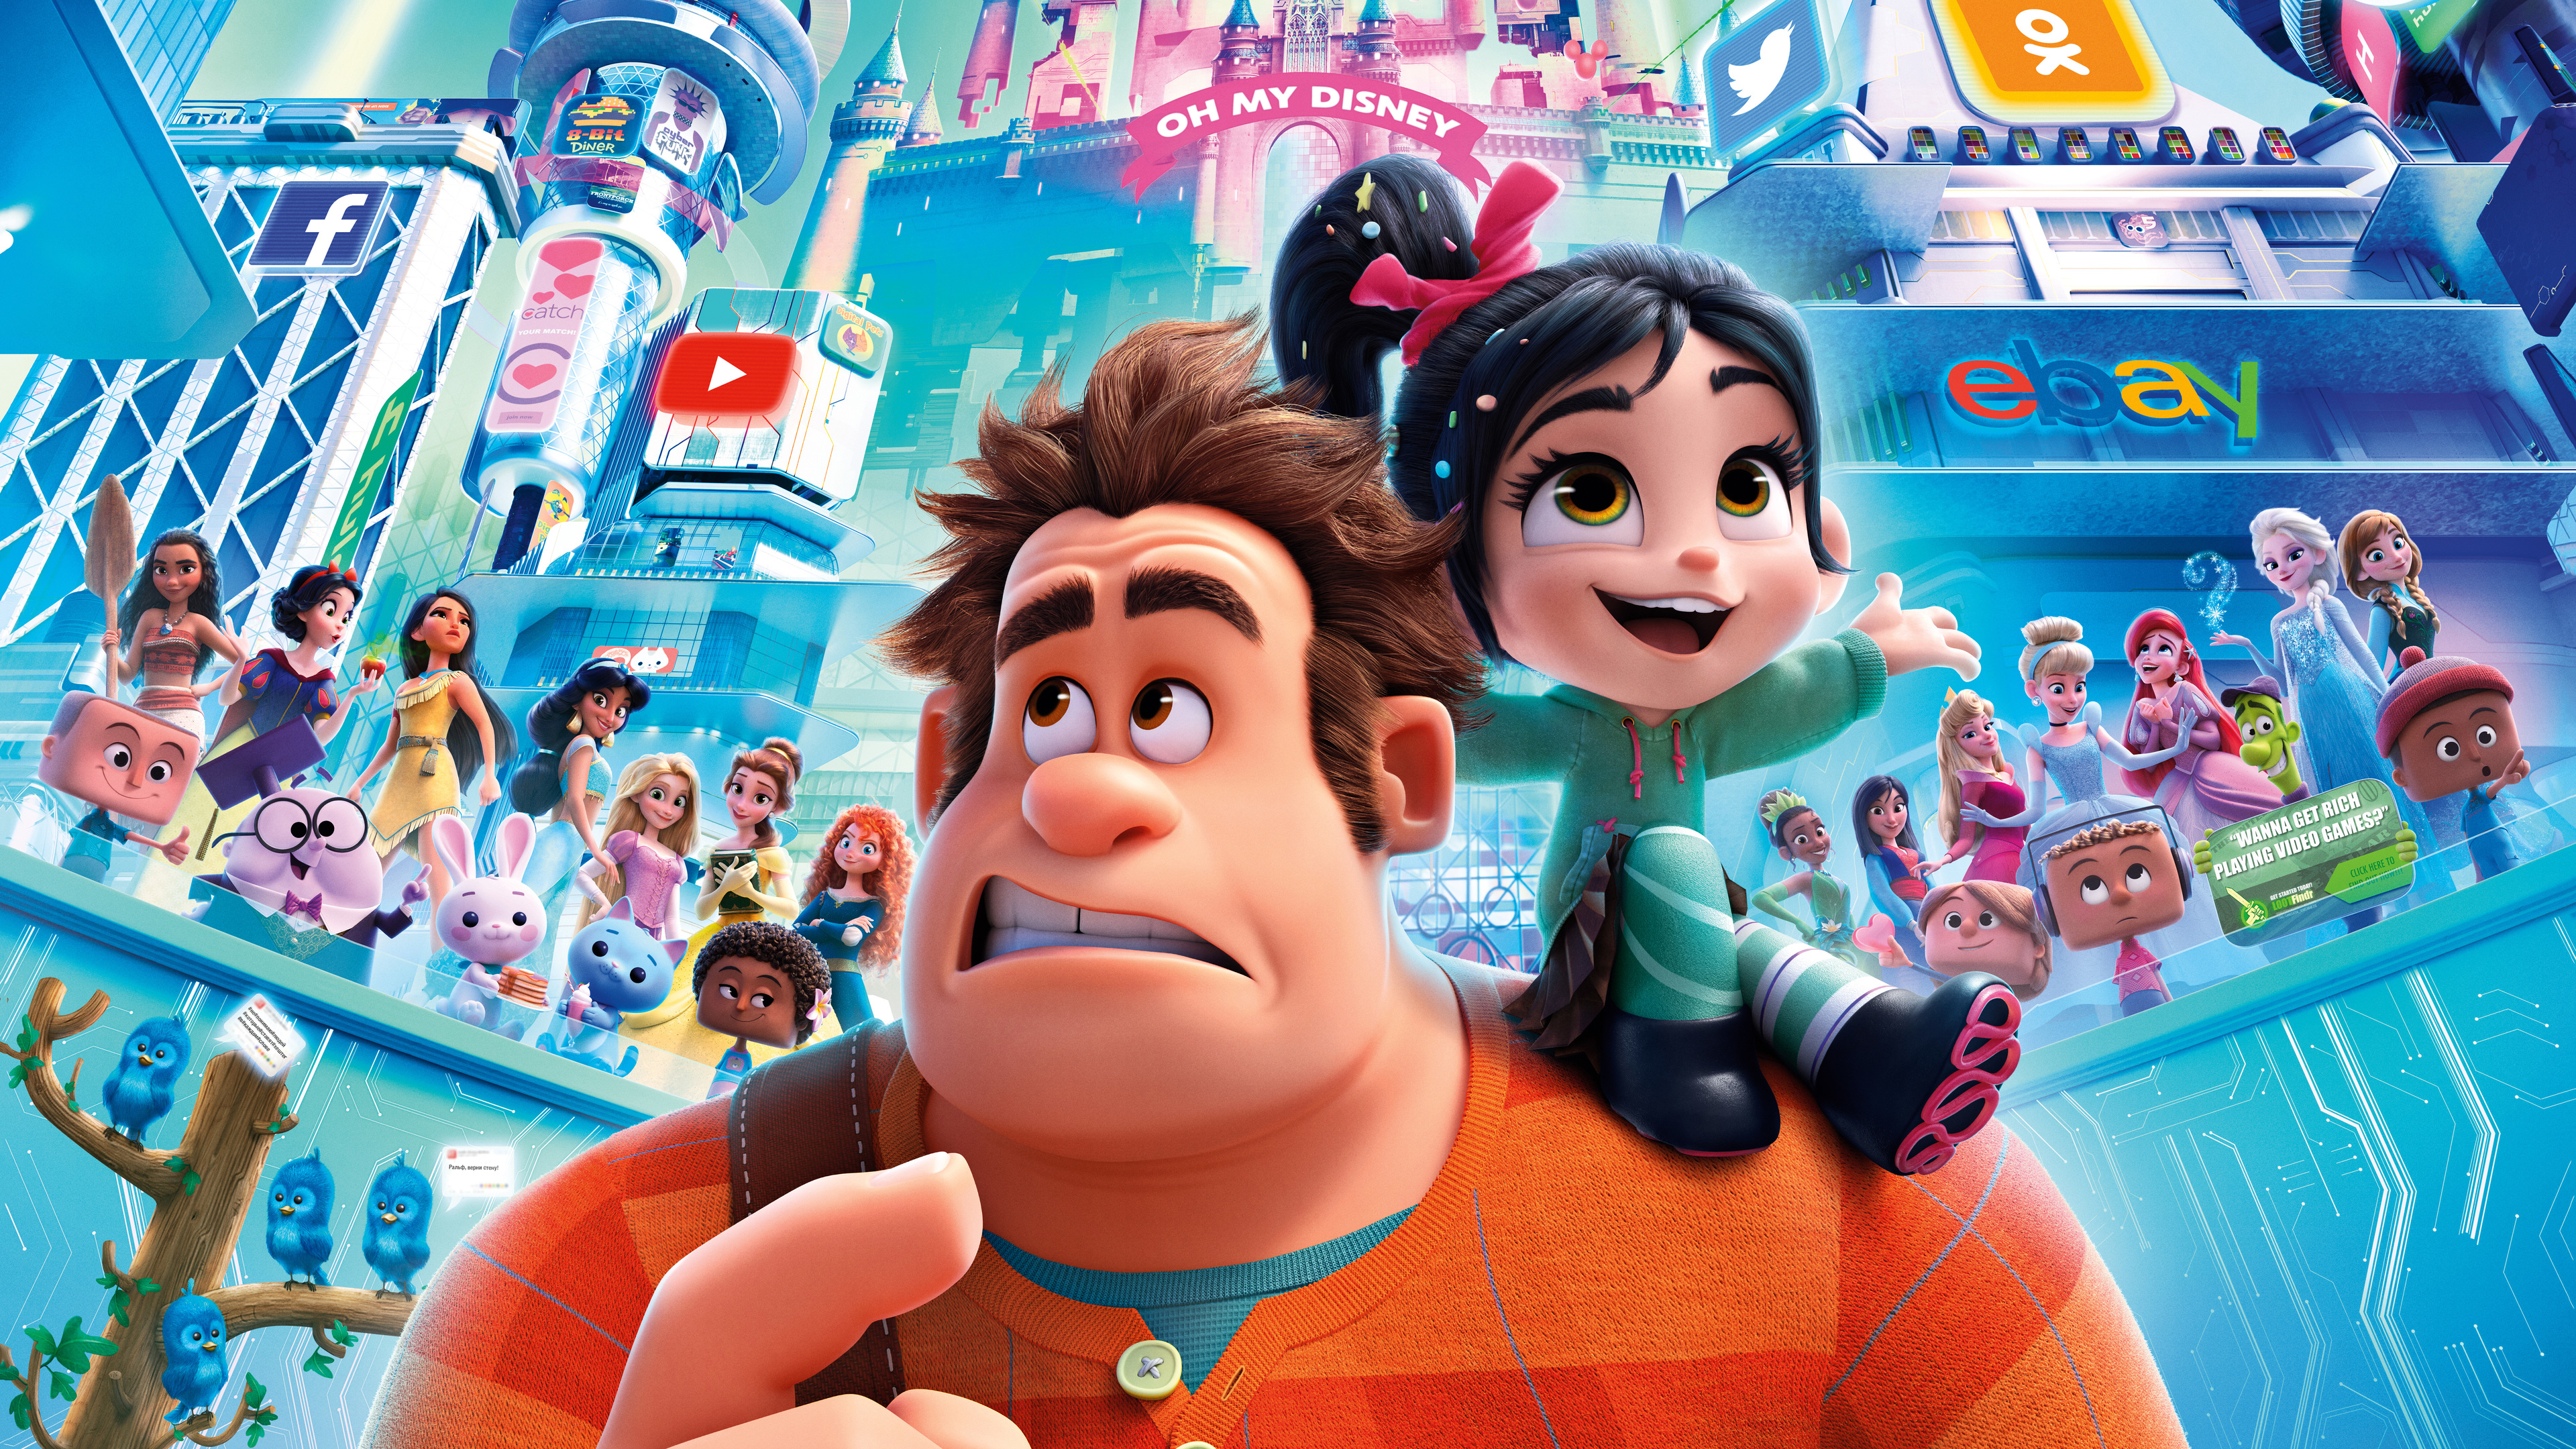 wreck it ralph 2 2018 official poster 4k 1543105187 - Wreck It Ralph 2 2018 Official Poster 4k - wreck it ralph 2 wallpapers, movies wallpapers, animated movies wallpapers, 8k wallpapers, 5k wallpapers, 4k-wallpapers, 2018-movies-wallpapers